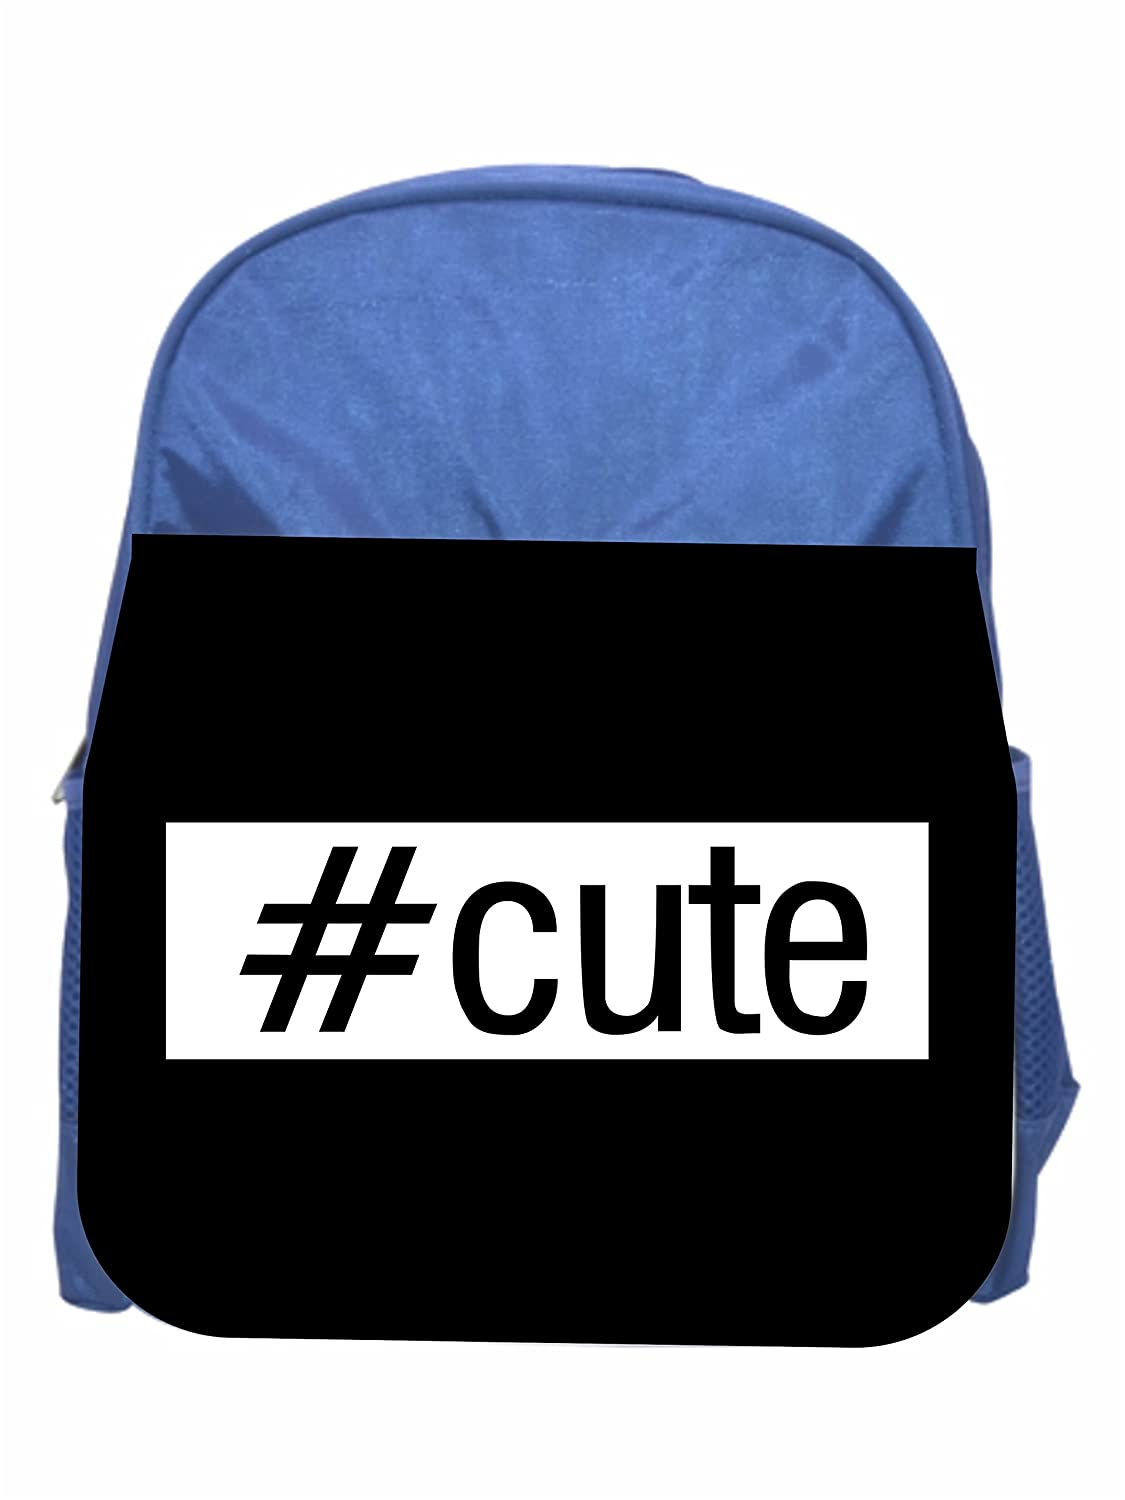 a6313120f85a Amazon.com | #Cute - Boys/Girls Blue Preschool Toddler Kids Backpack ...